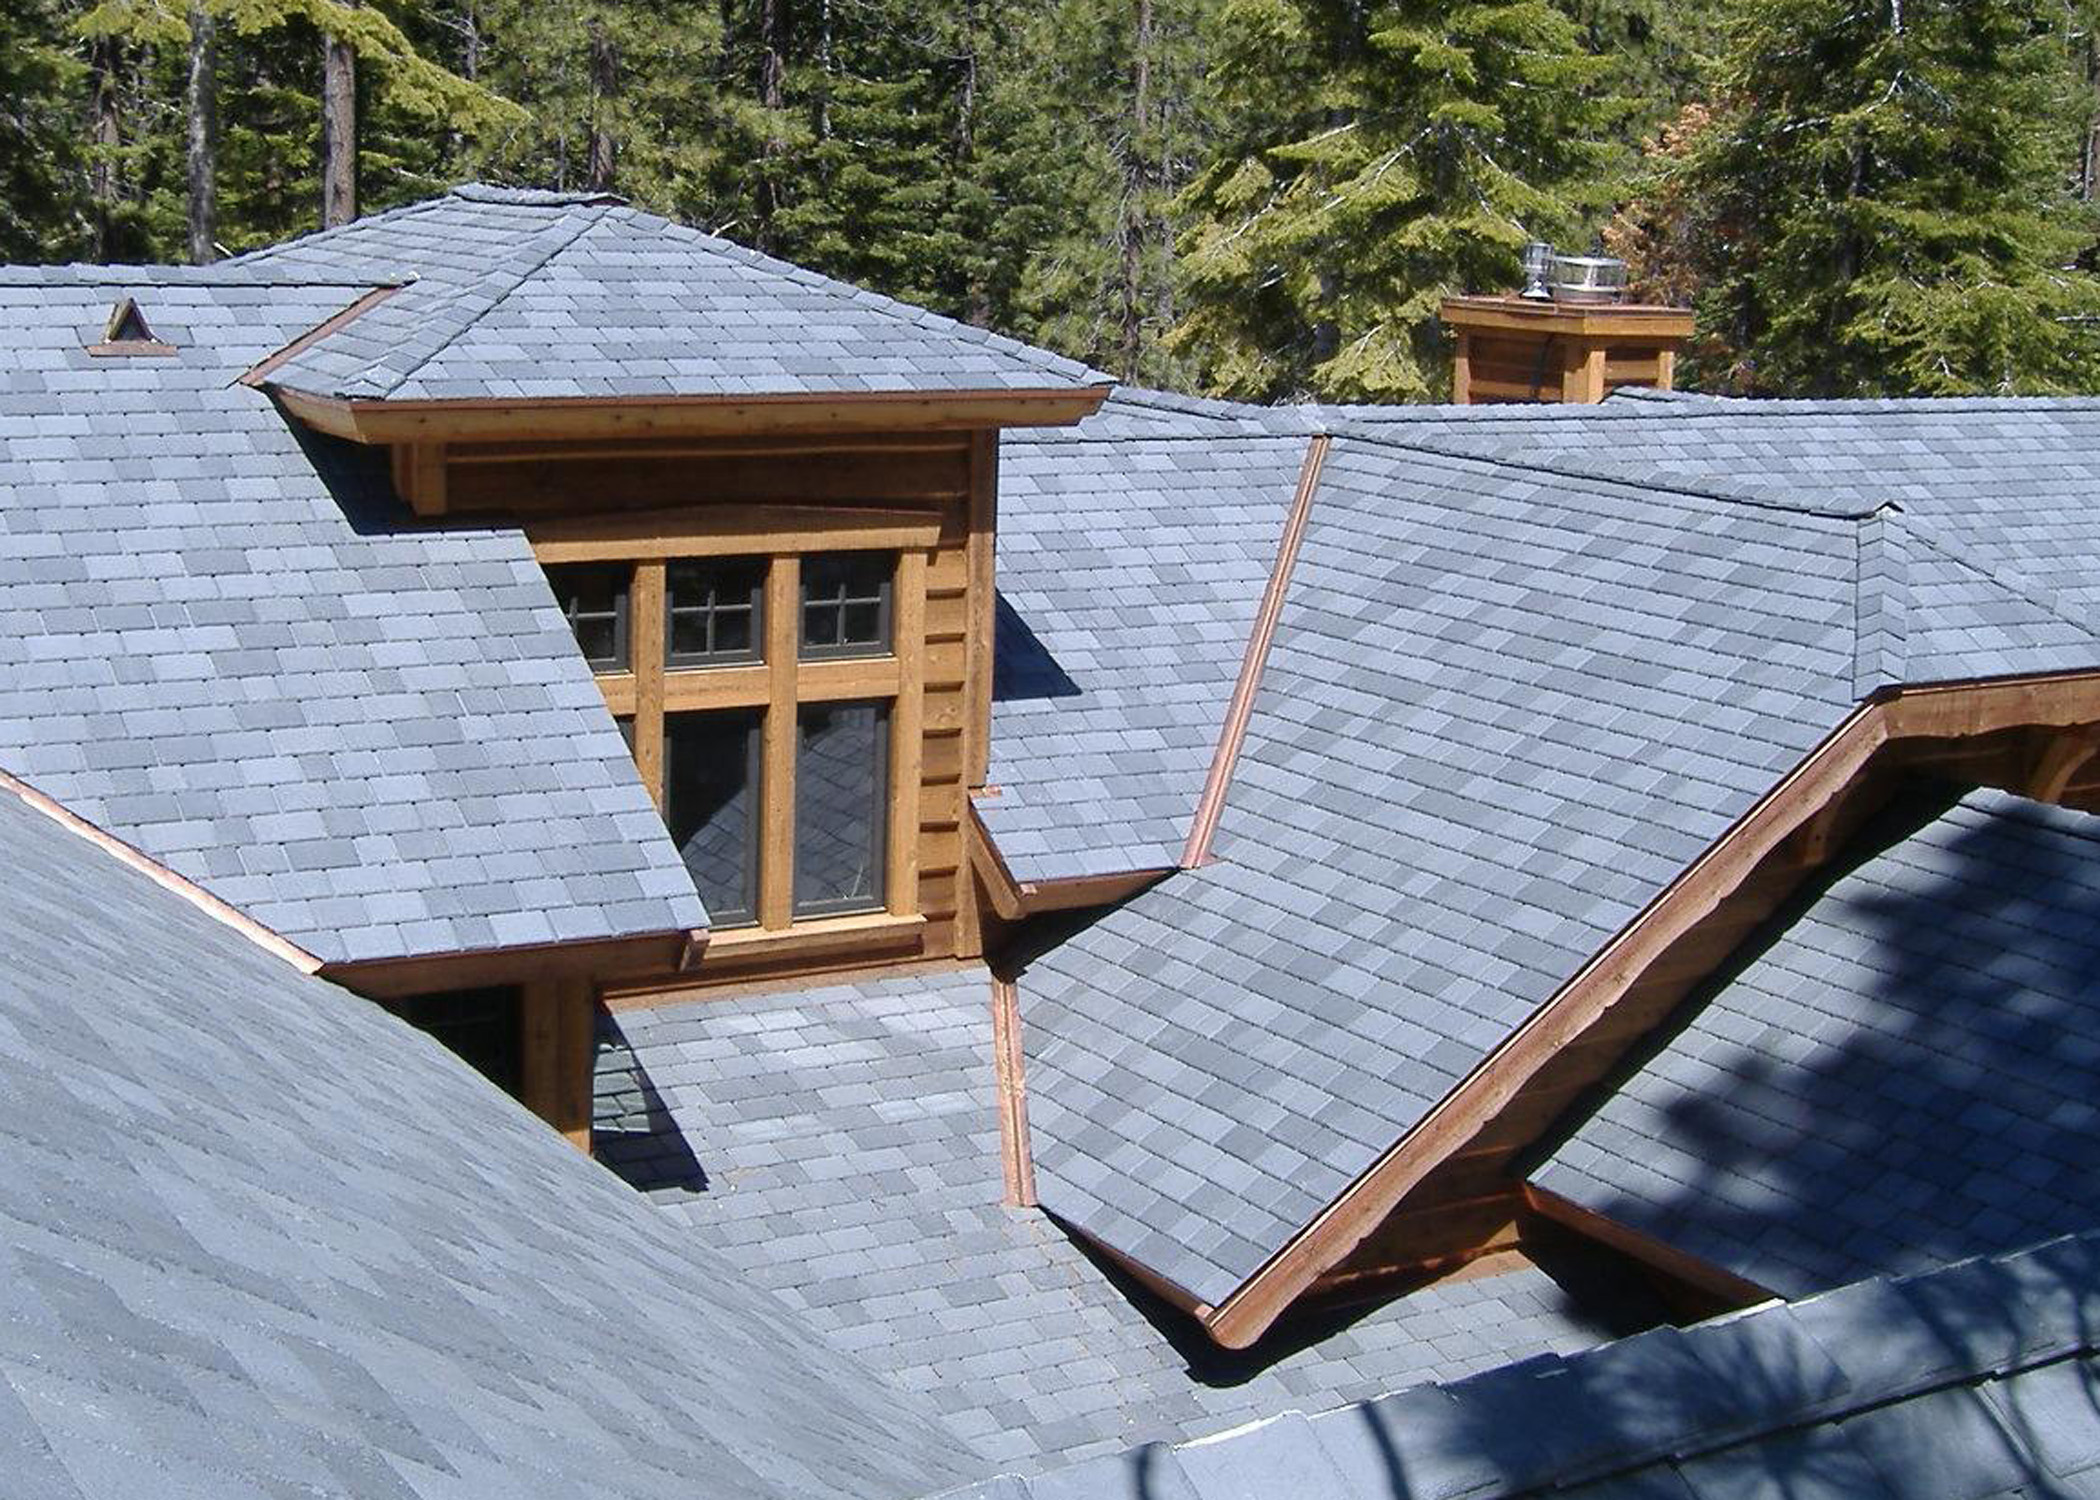 Davinci roofscapes launches 2015 shake it up exterior for Davinci roof tiles pricing